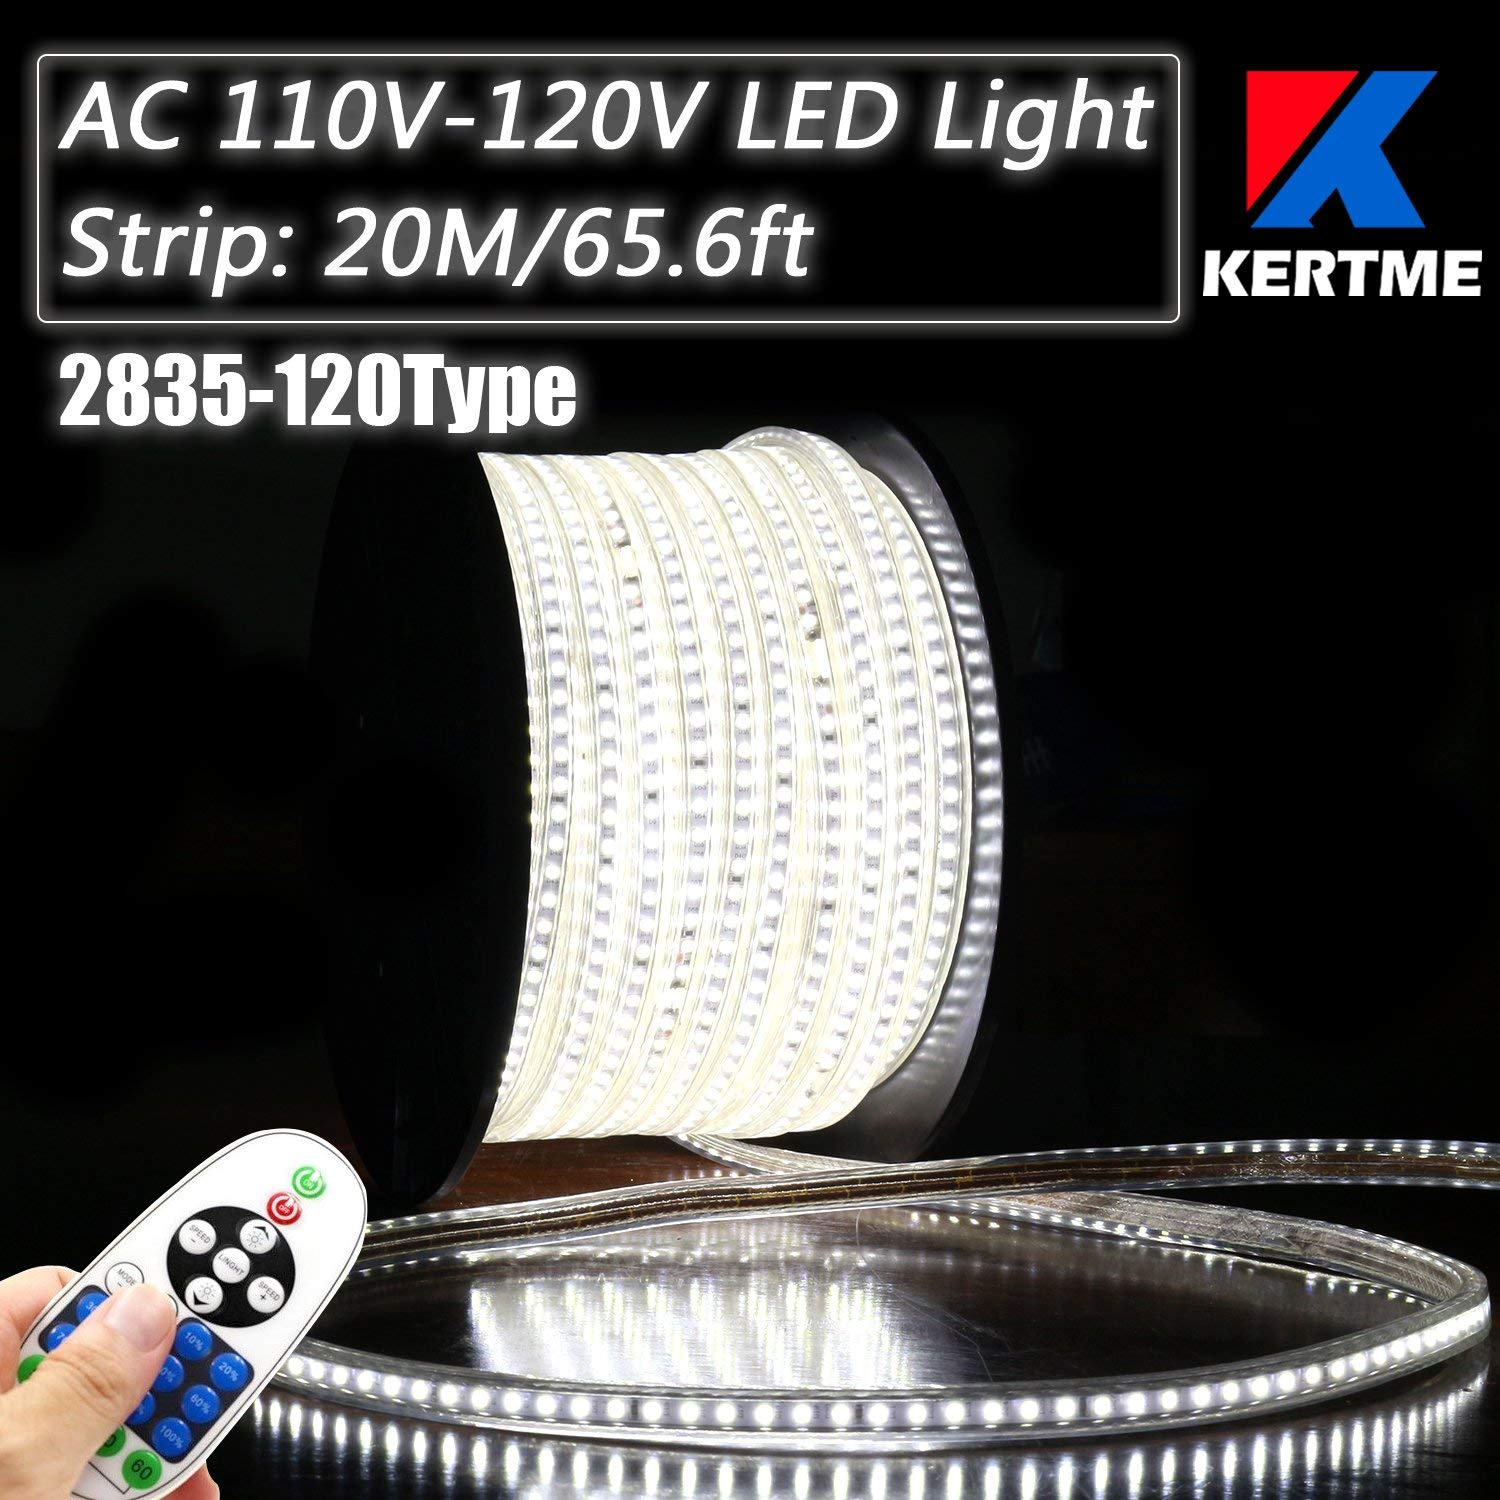 KERTME 2835-120 Type AC 110-120V LED Strip Lights, Flexible/Waterproof/Dimmable/Multi-Modes LED Rope Light + 23 Keys Remote for Home/Garden/Building Decoration (65.6ft/20m, White 6000K)